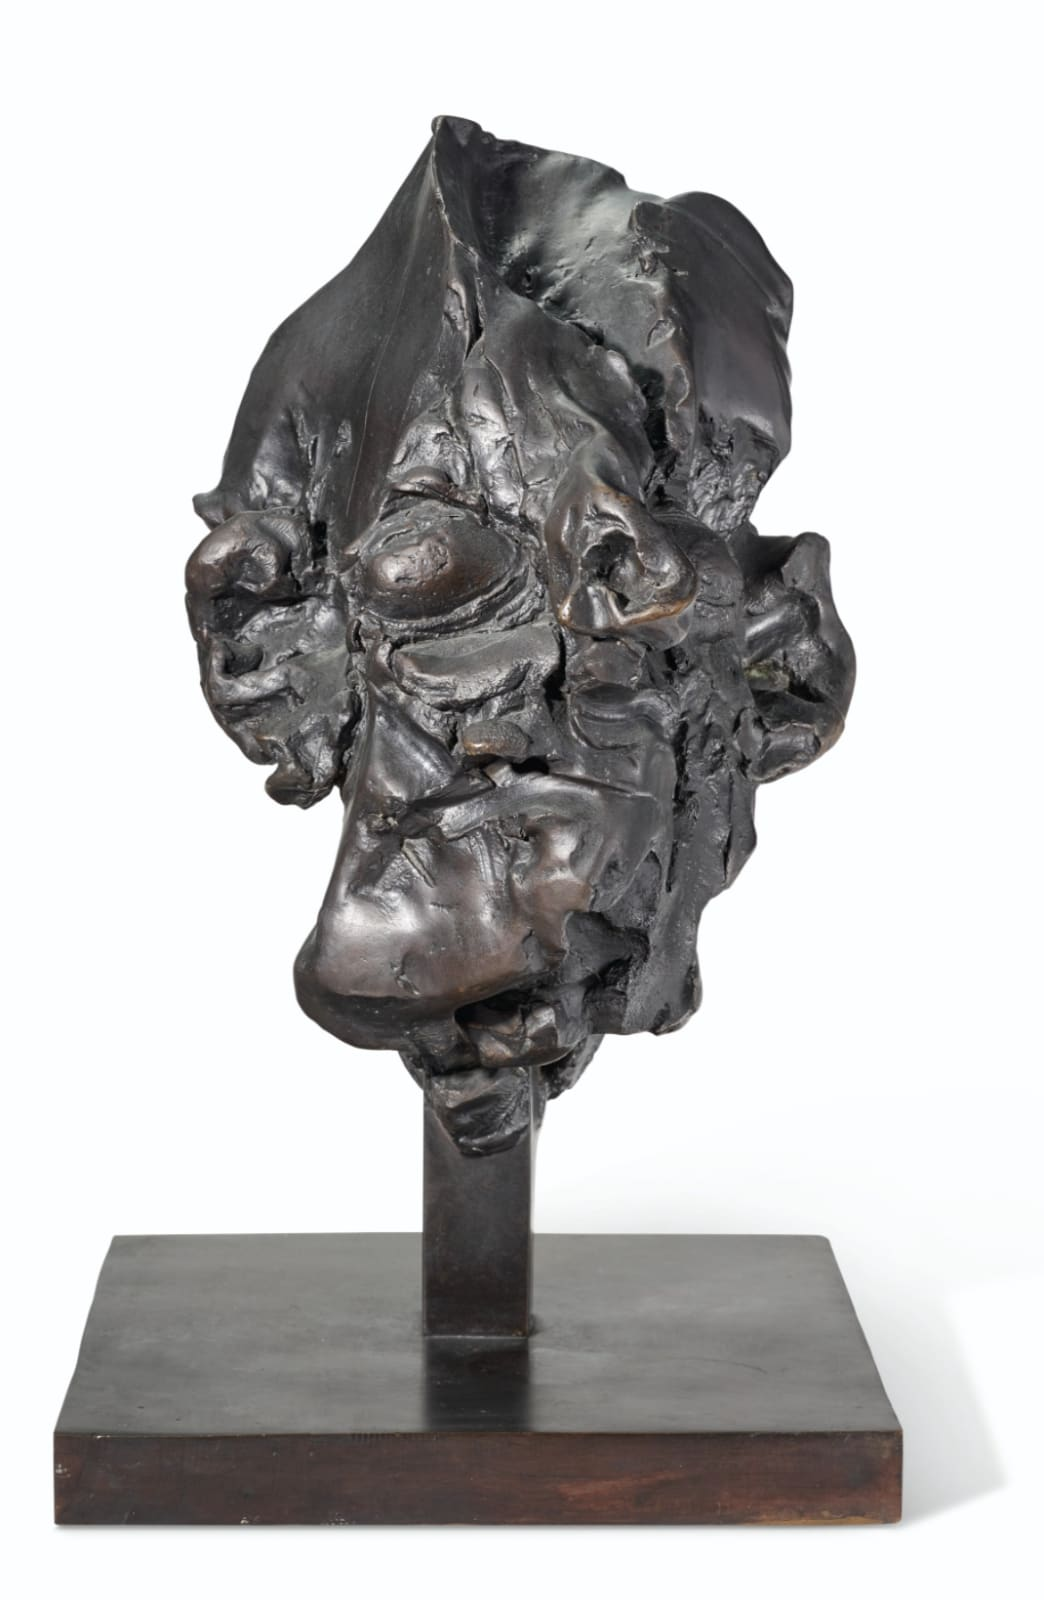 Willem de Kooning Head #3 1973 bronze 20 x 11 1/2 x 11 5/8 inches 50.8 x 29.2 x 29.5 cm Edition 8 of 12, with 3 APs